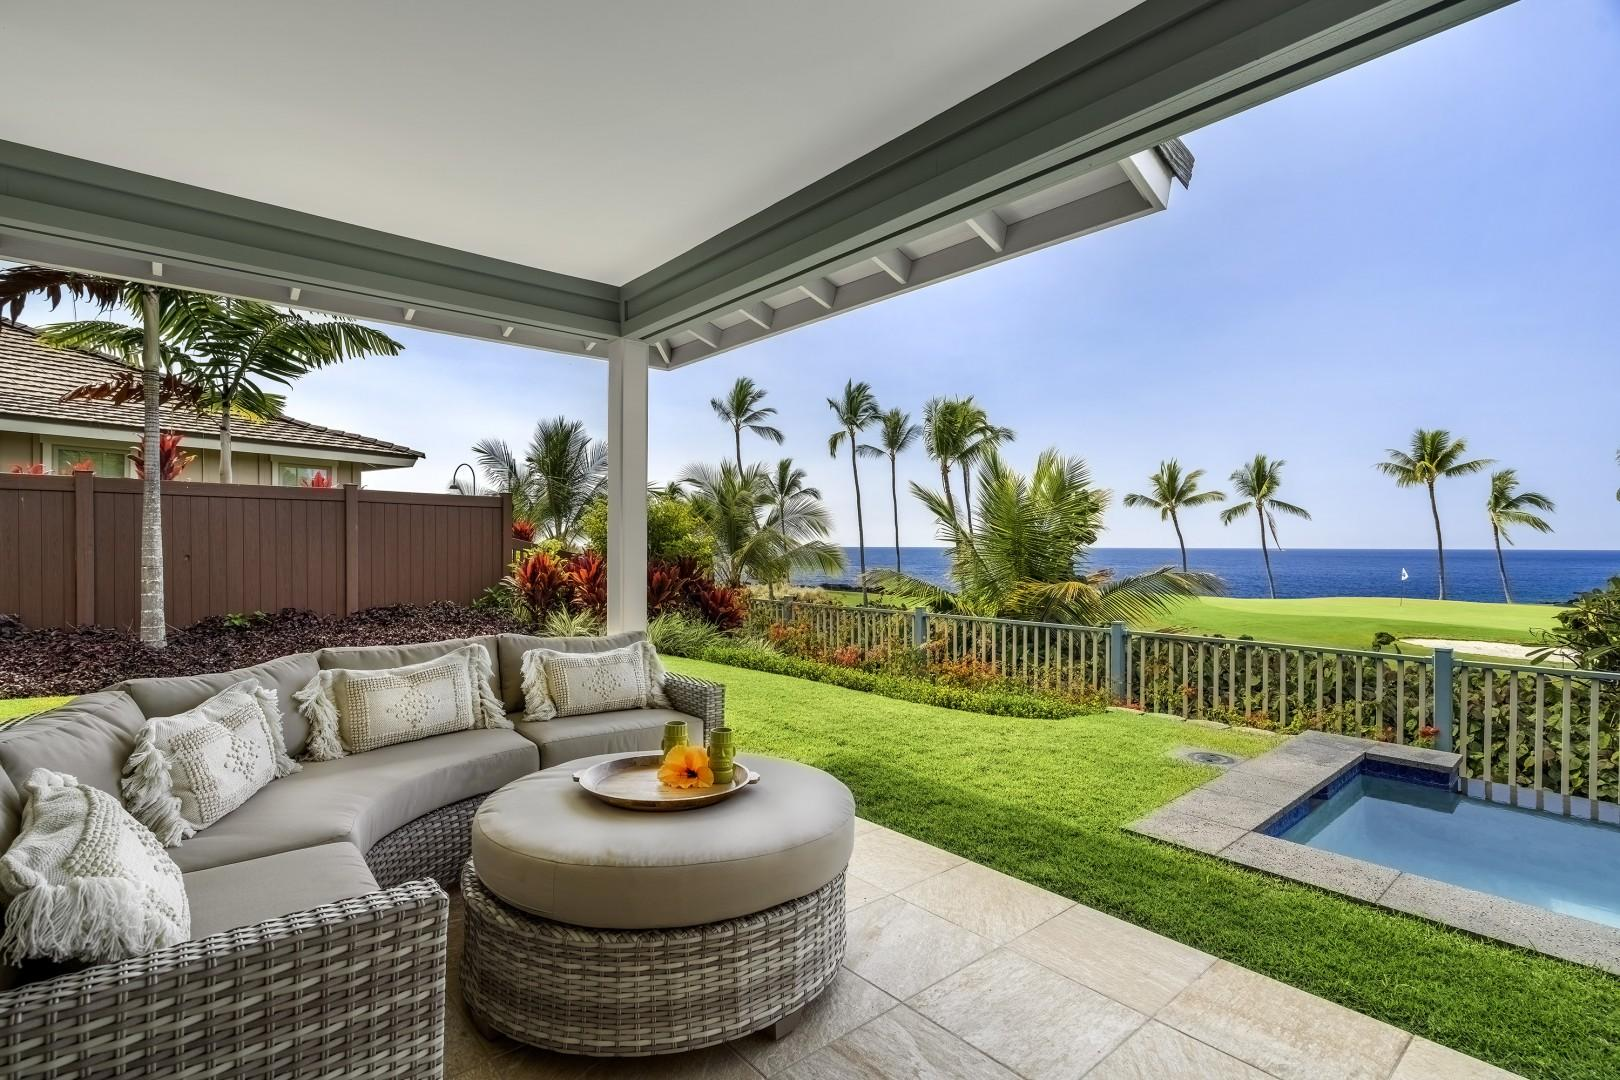 Comfortable outdoor seating to watch the ocean activity